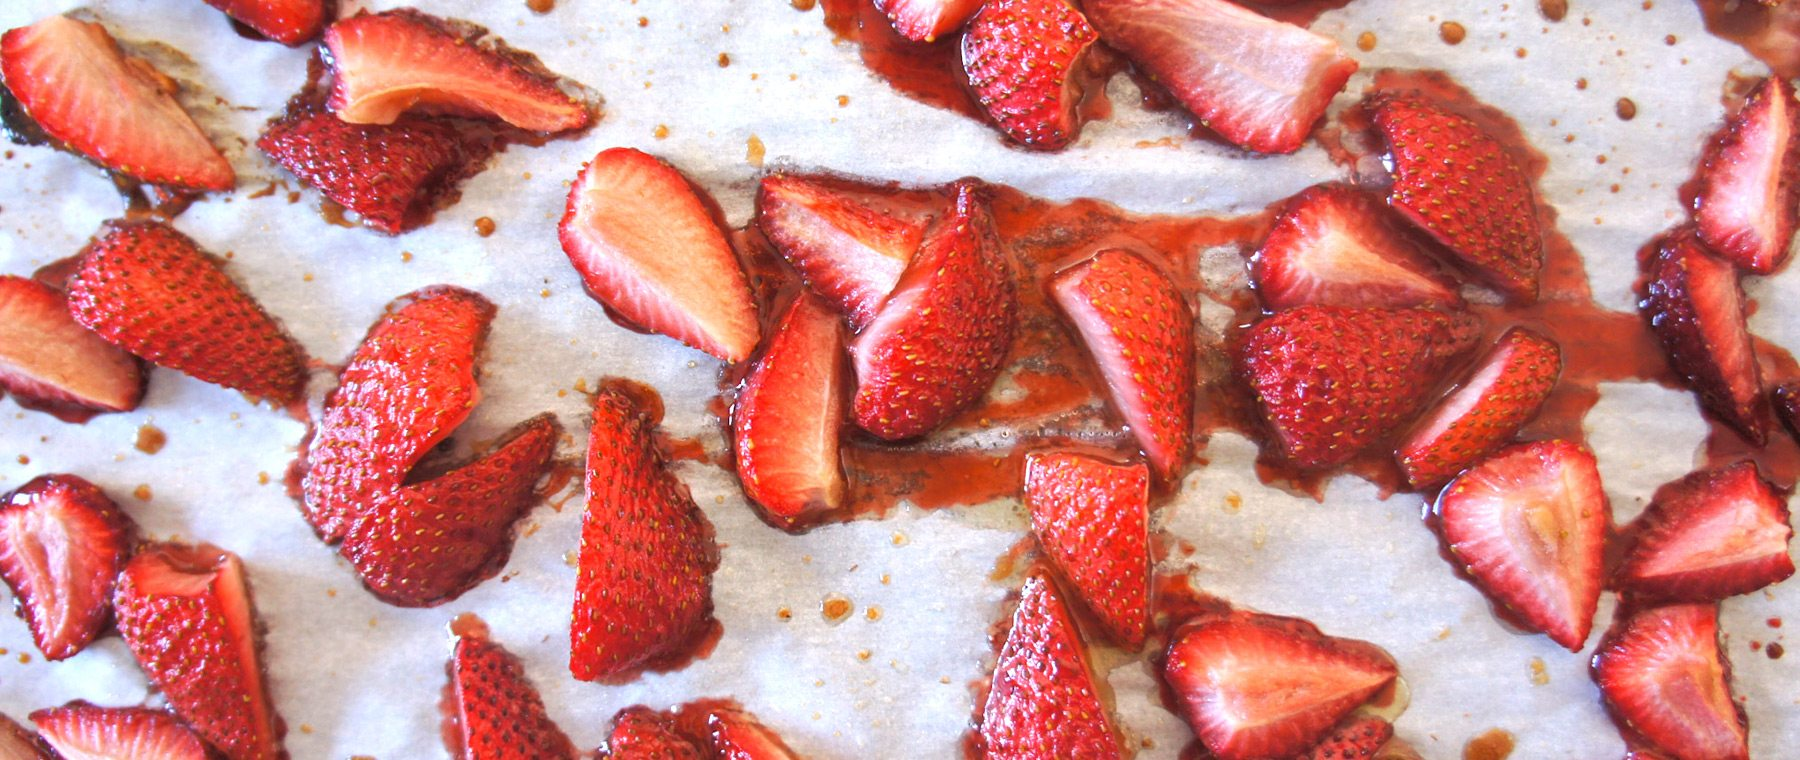 Kate's Plate – Strawberry Fields Forever